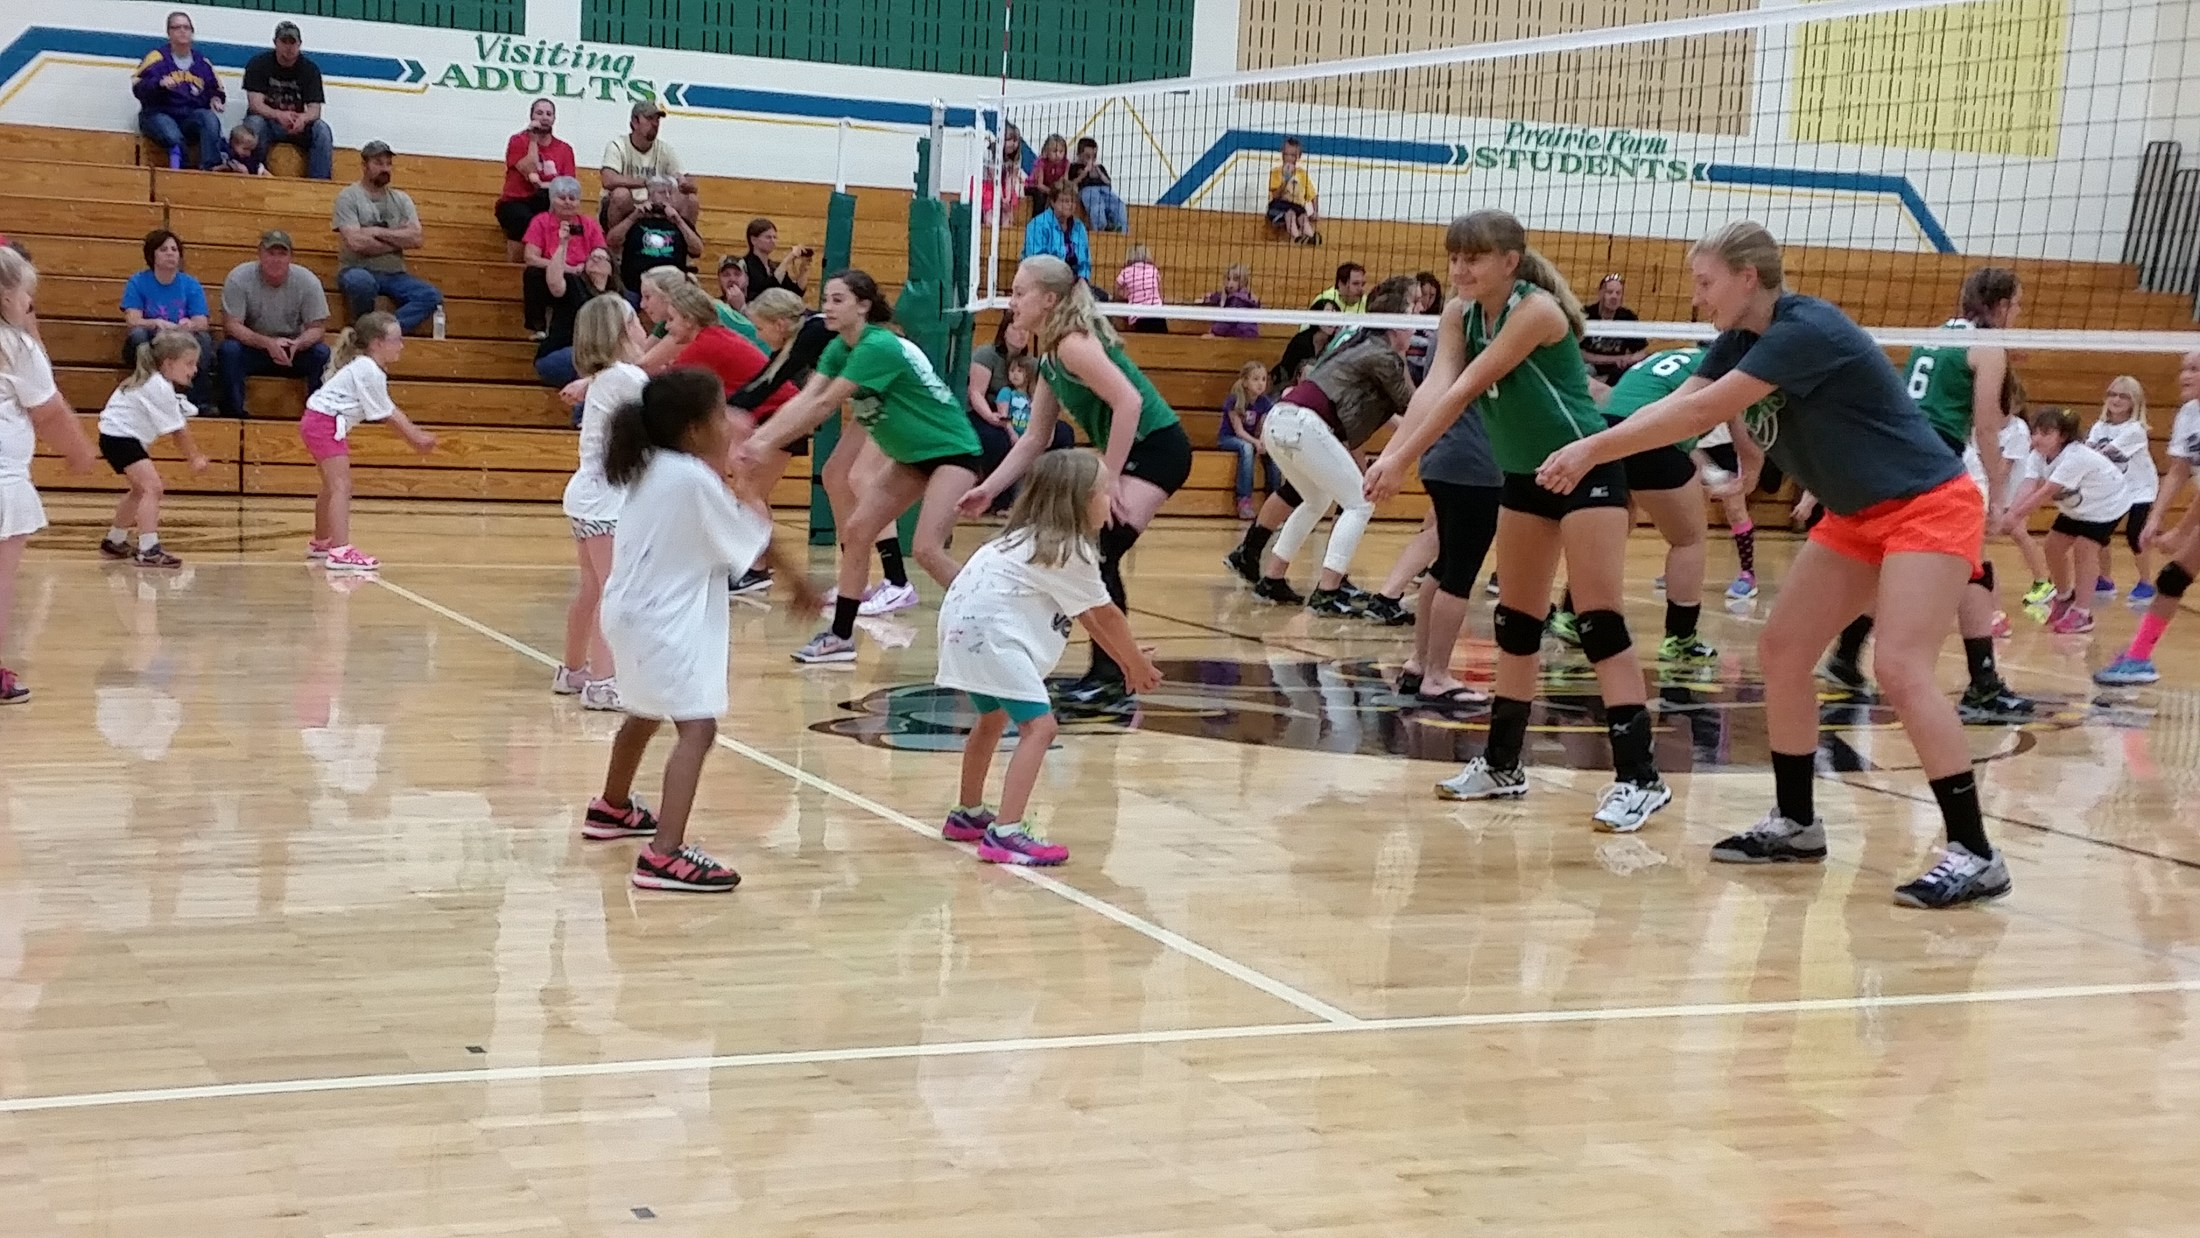 Multi-age volleyball instruction.